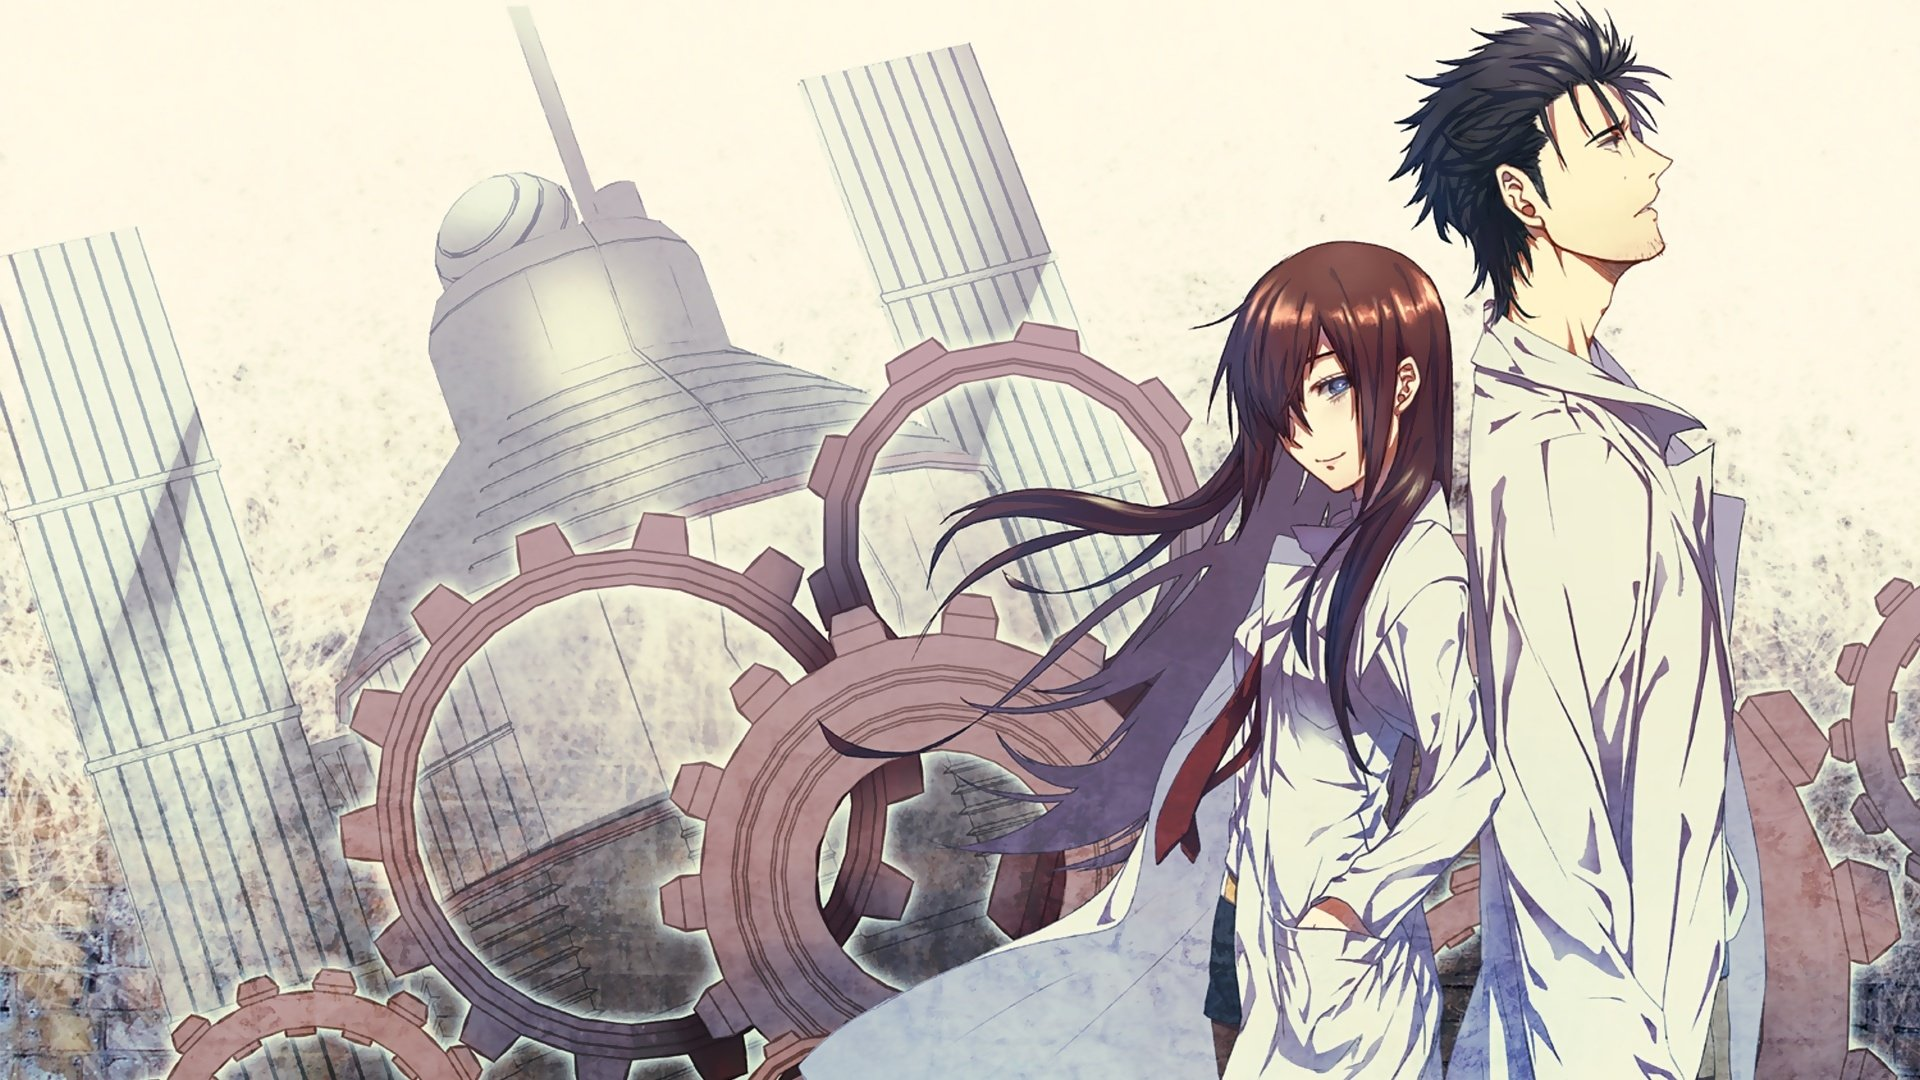 545 Steins Gate Hd Wallpapers Background Images Wallpaper Abyss